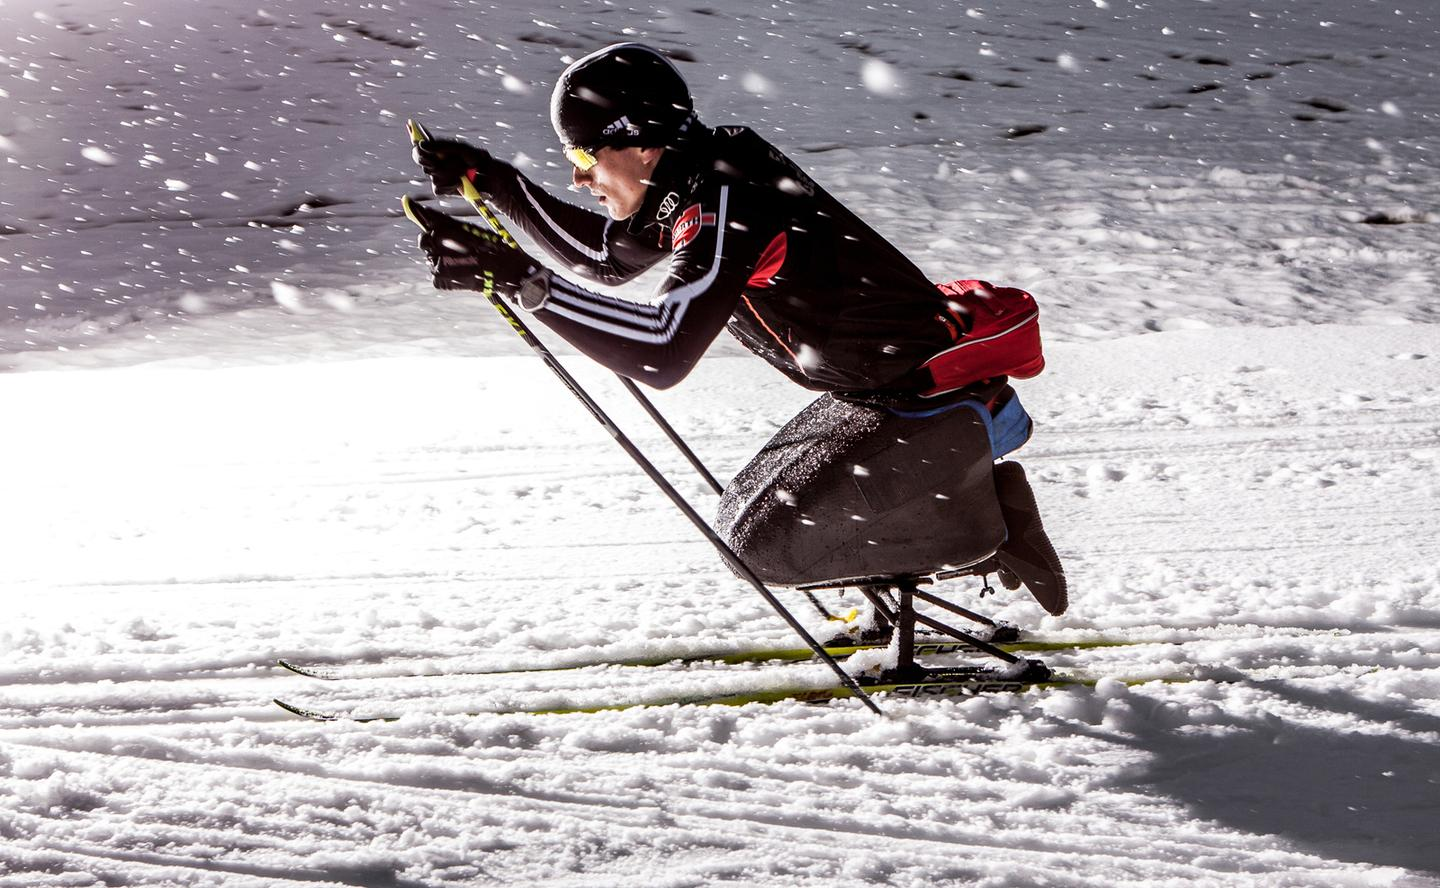 Scientists are using new technology to develop ski sledges optimized for each individual athlete (Photo: Ruben Elstner, MikroTribologie Centrum µTC)